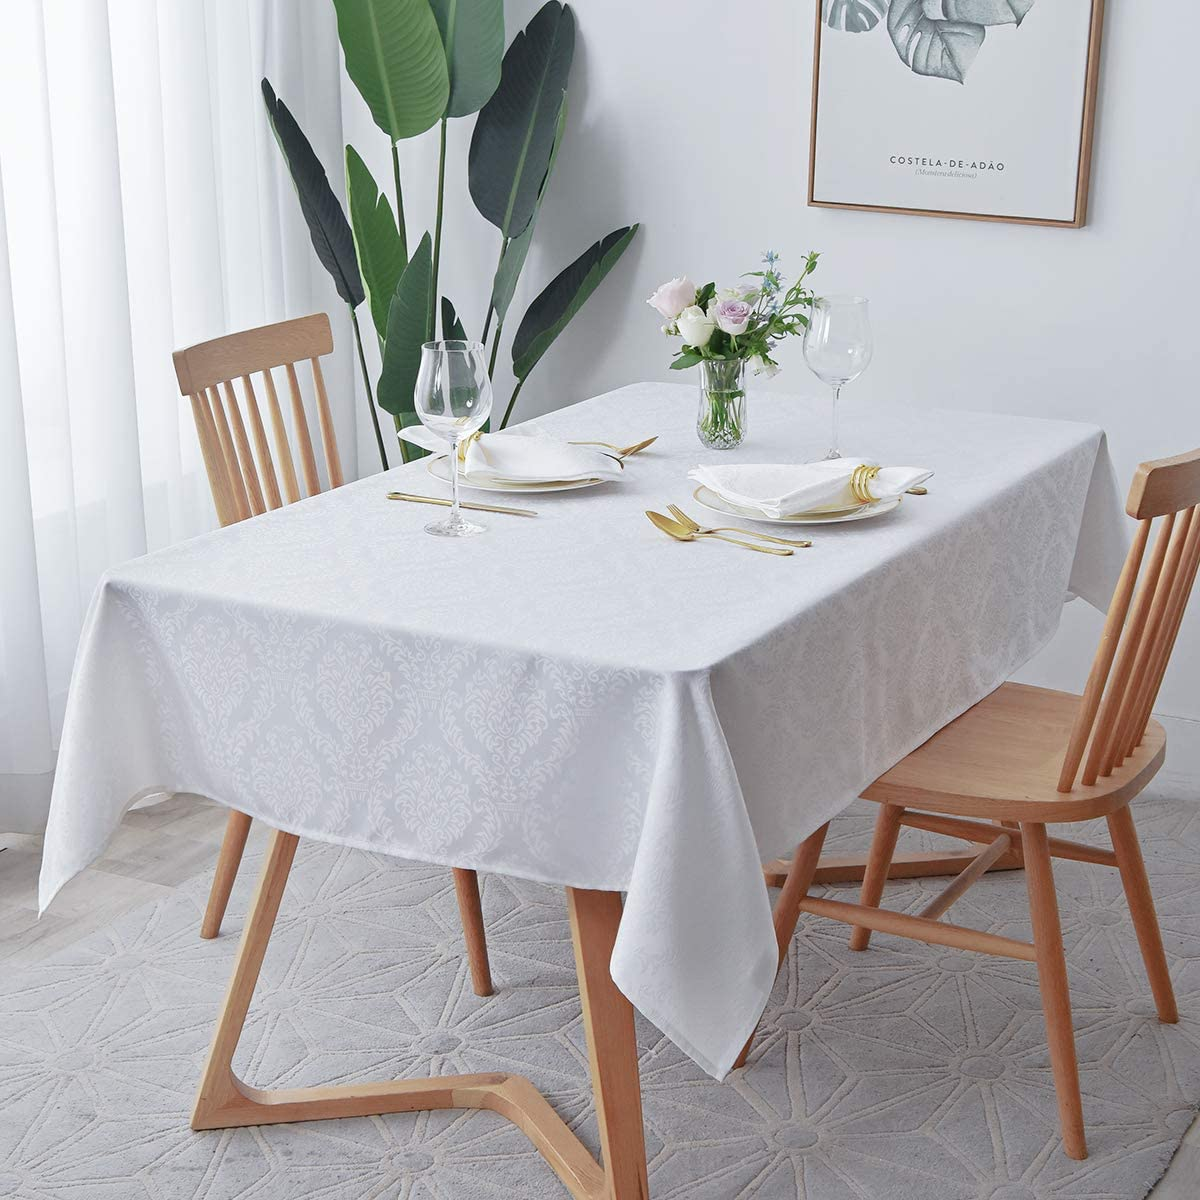 maxmill Square Tablecloth Damask Design Spillproof Wrinkle Free Oil Resistant Heavy Weight Soft Table Cloth Decorative Fabric Table Cover for Outdoor and Indoor Use Square 52 x 52 Inch White